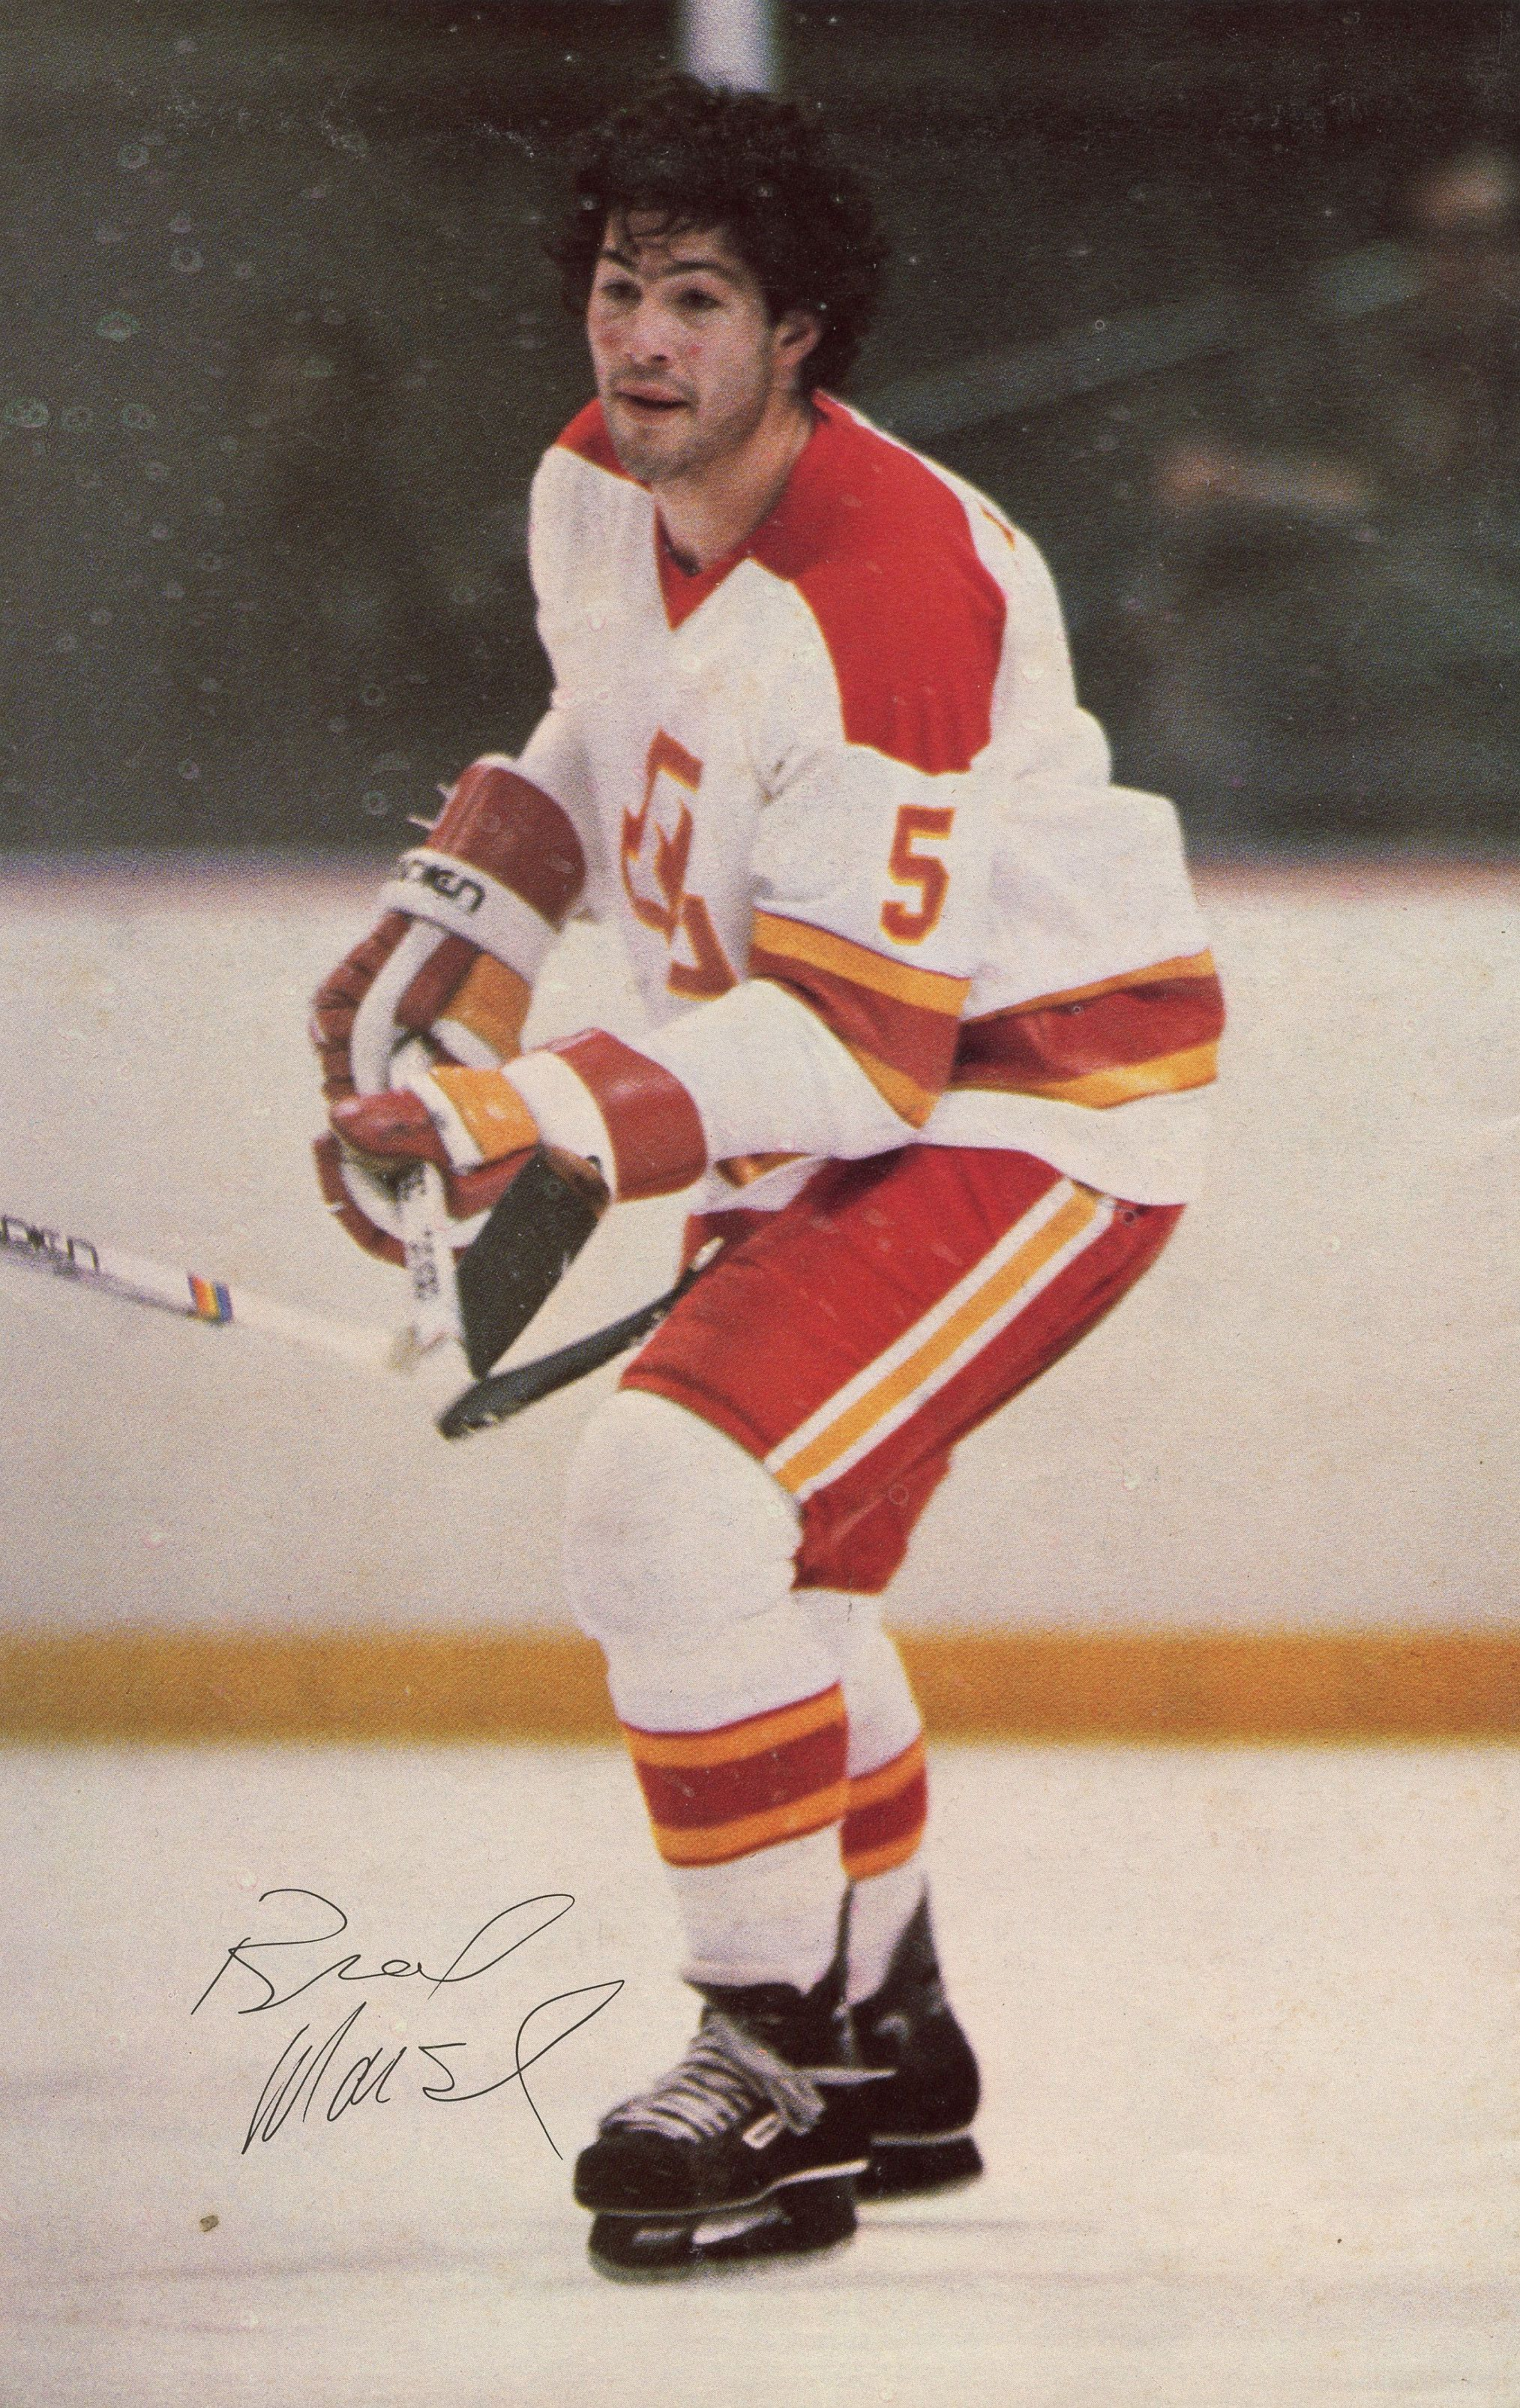 Brad Marsh! One of the last players to skate without a